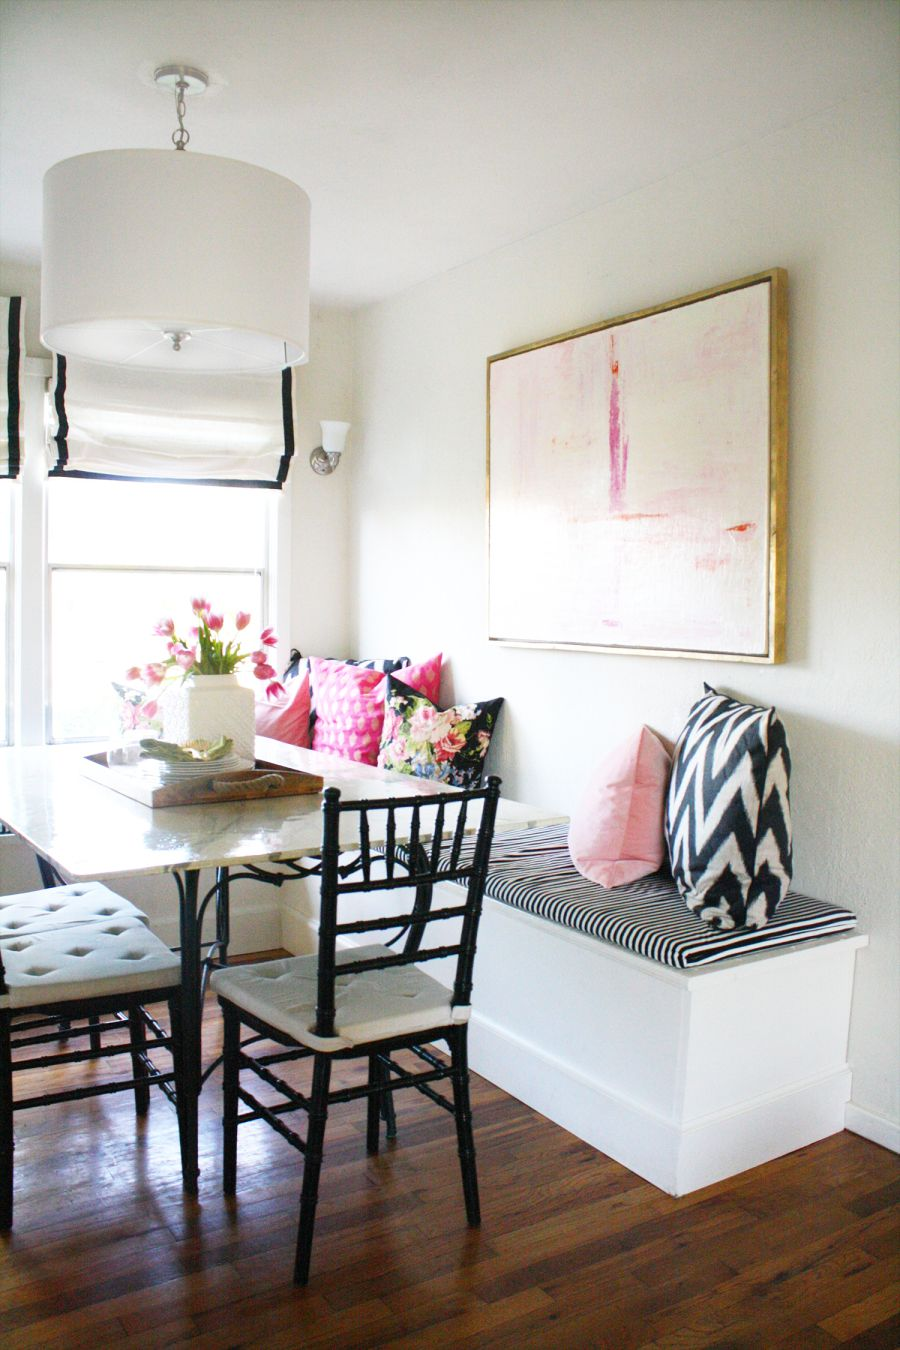 Room For Rent Design: A Blogger's Rental Home Full Of Steal-worthy DIY's